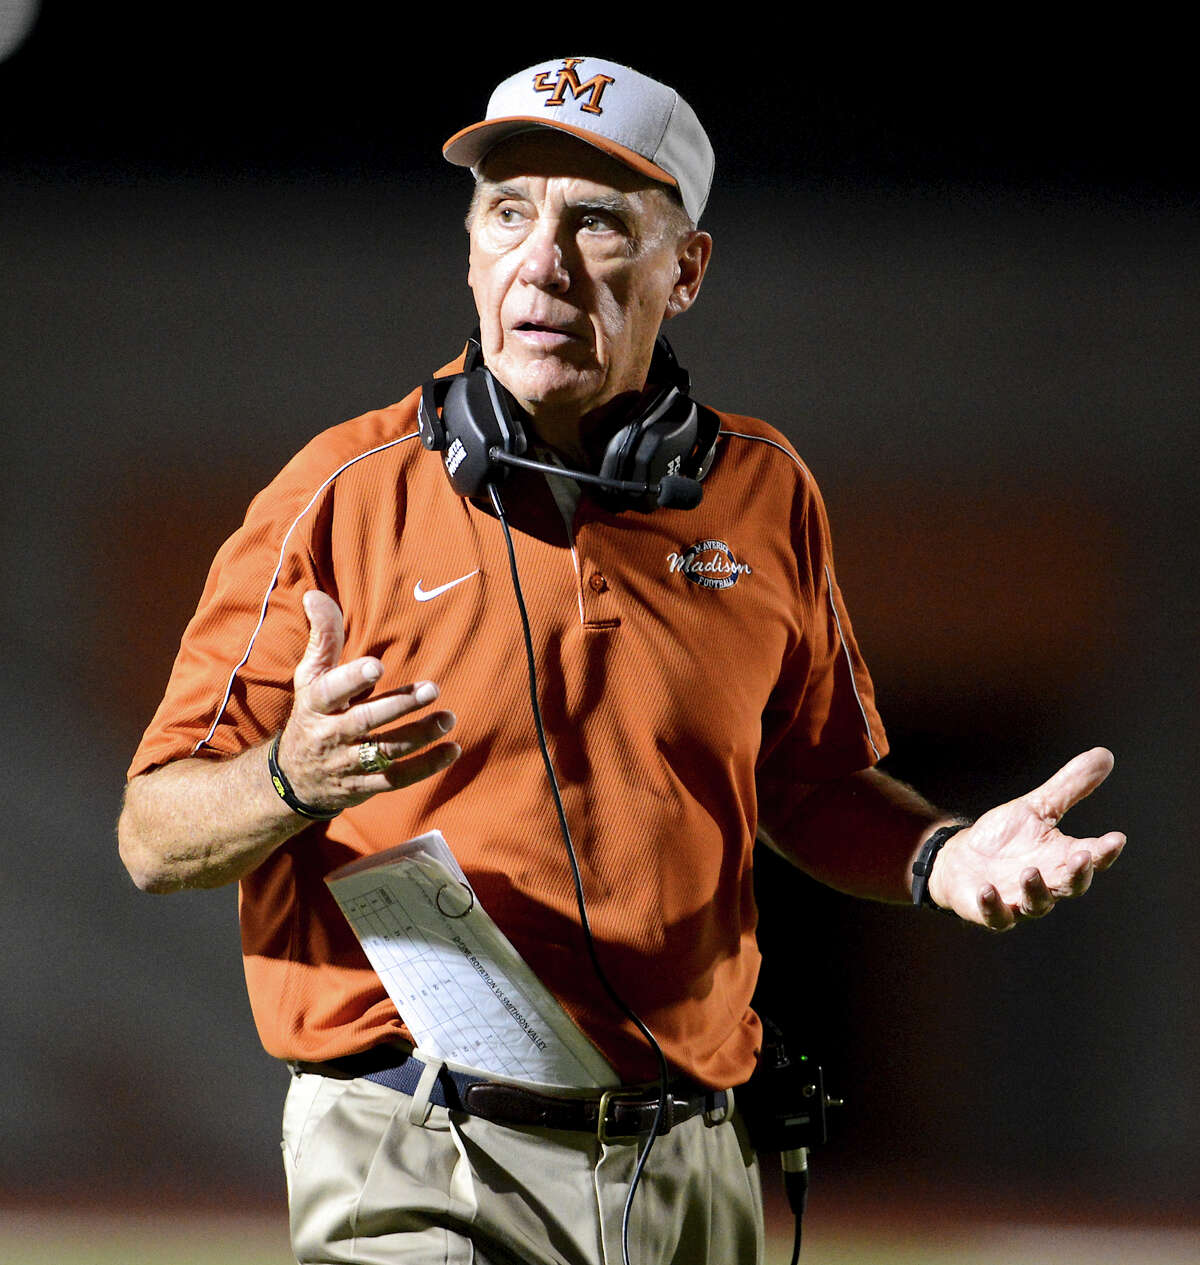 Madison head coach Jim Streety during a 26-5A Football game between the Reagan Rattlers and the Madison Mavericks at Heroes Stadium in San Antonio, Saturday, October 13, 2012. John Albright / Special to the Express-News.